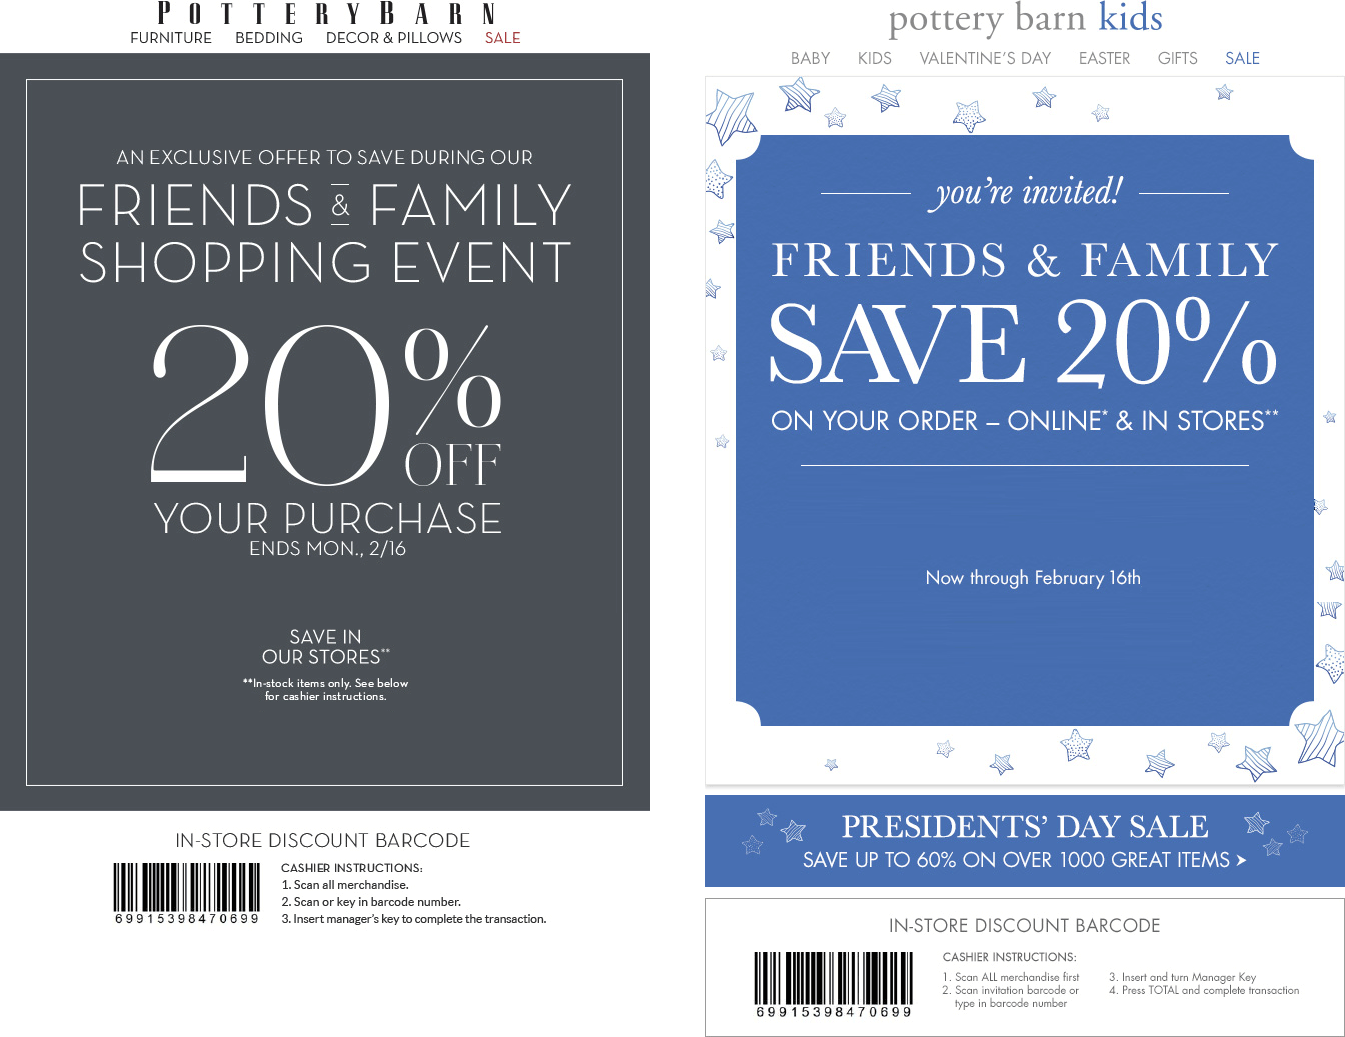 Past Pottery Barn Kids Coupon Codes